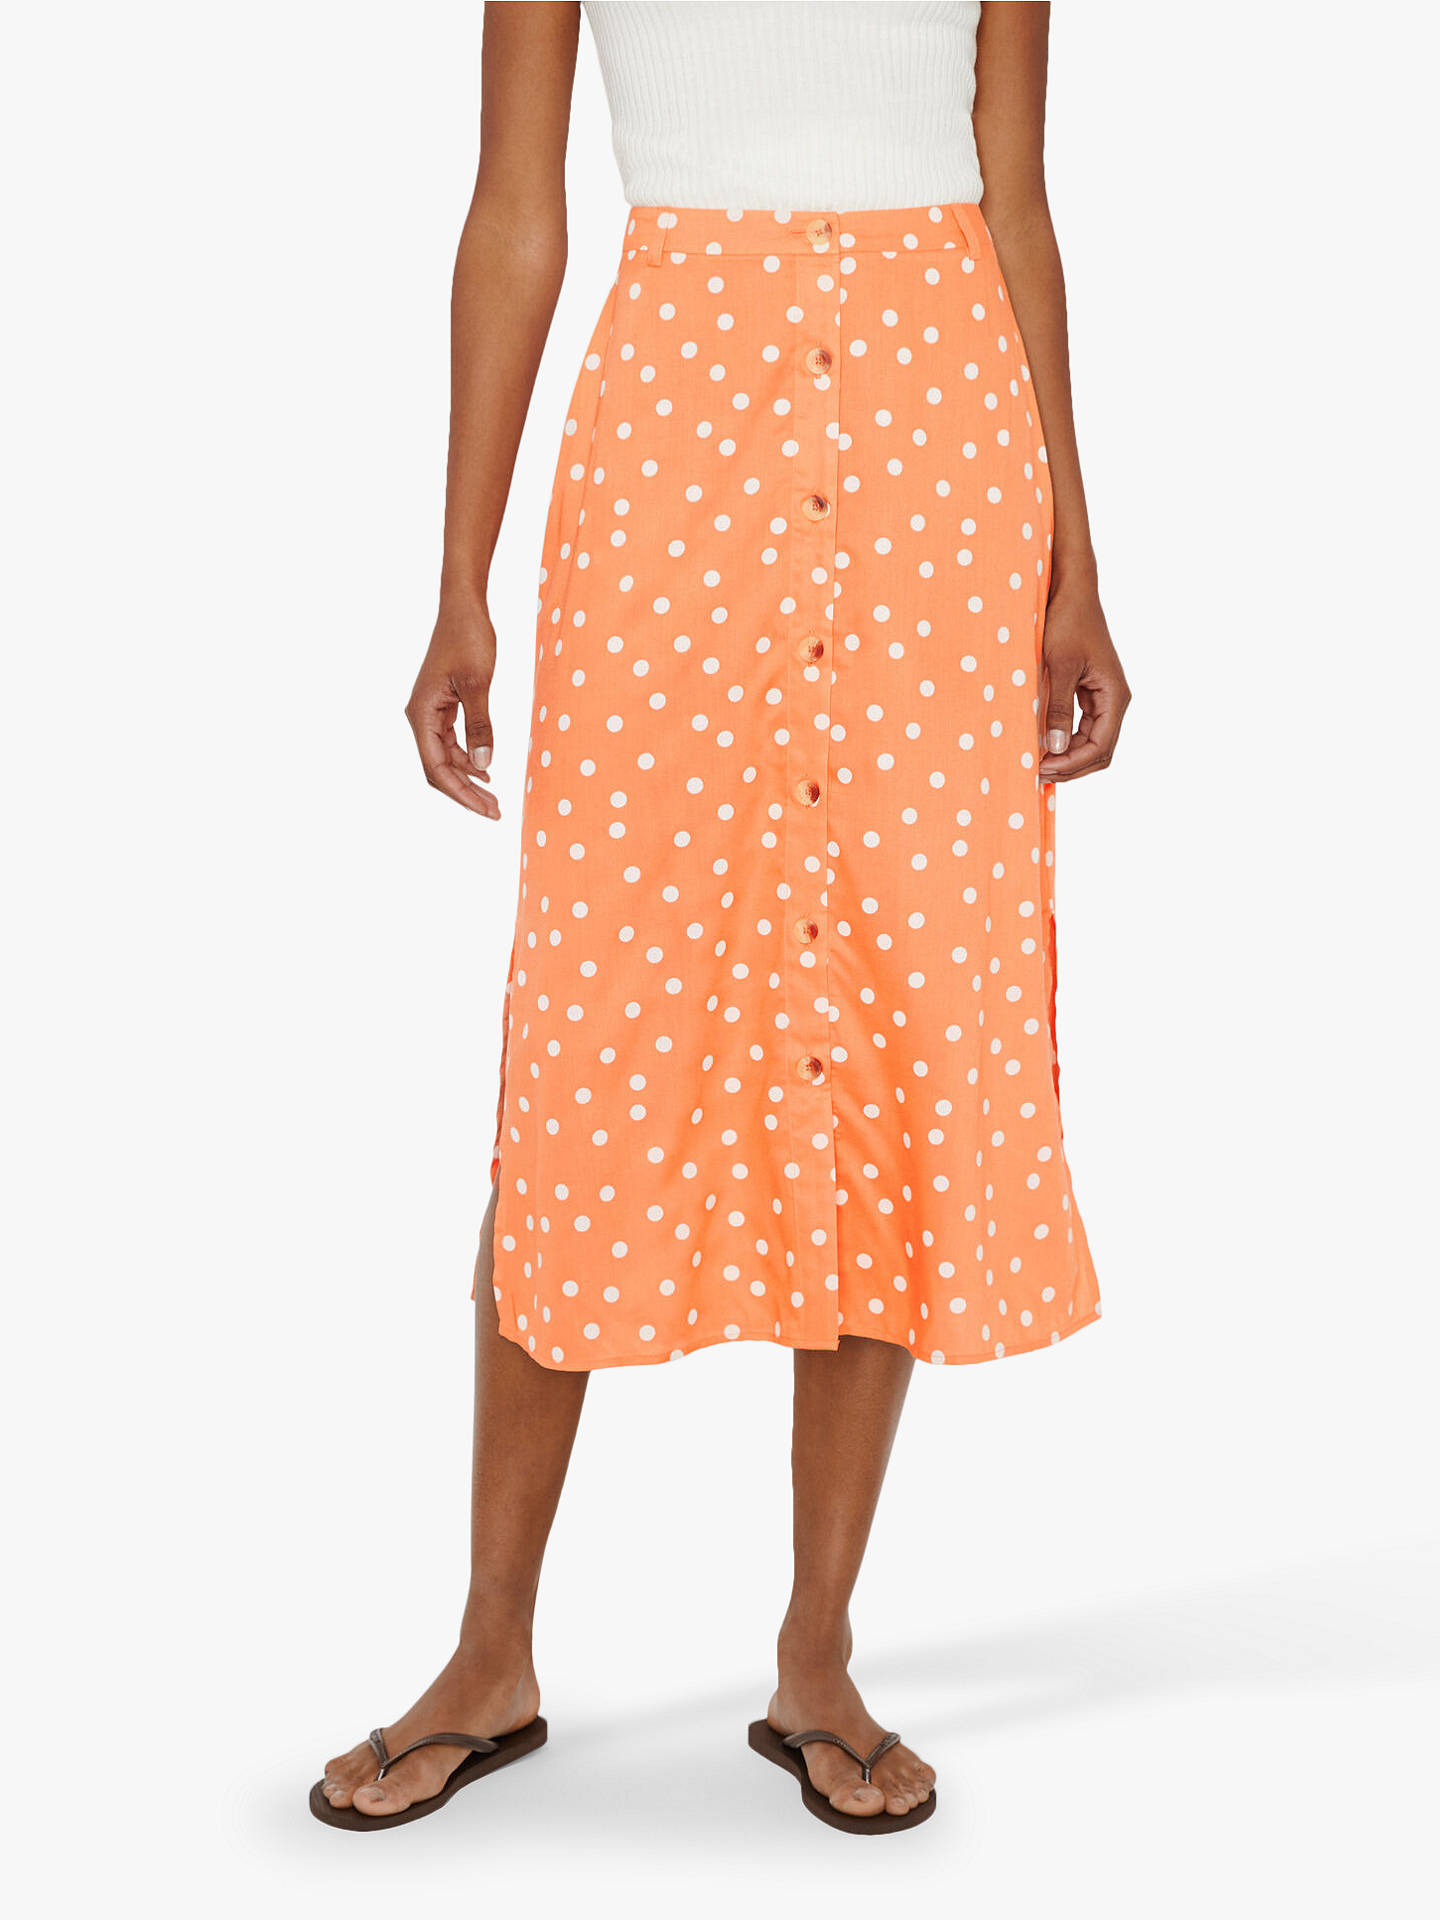 Warehouse Polka Dot Button Midi Skirt, Coral